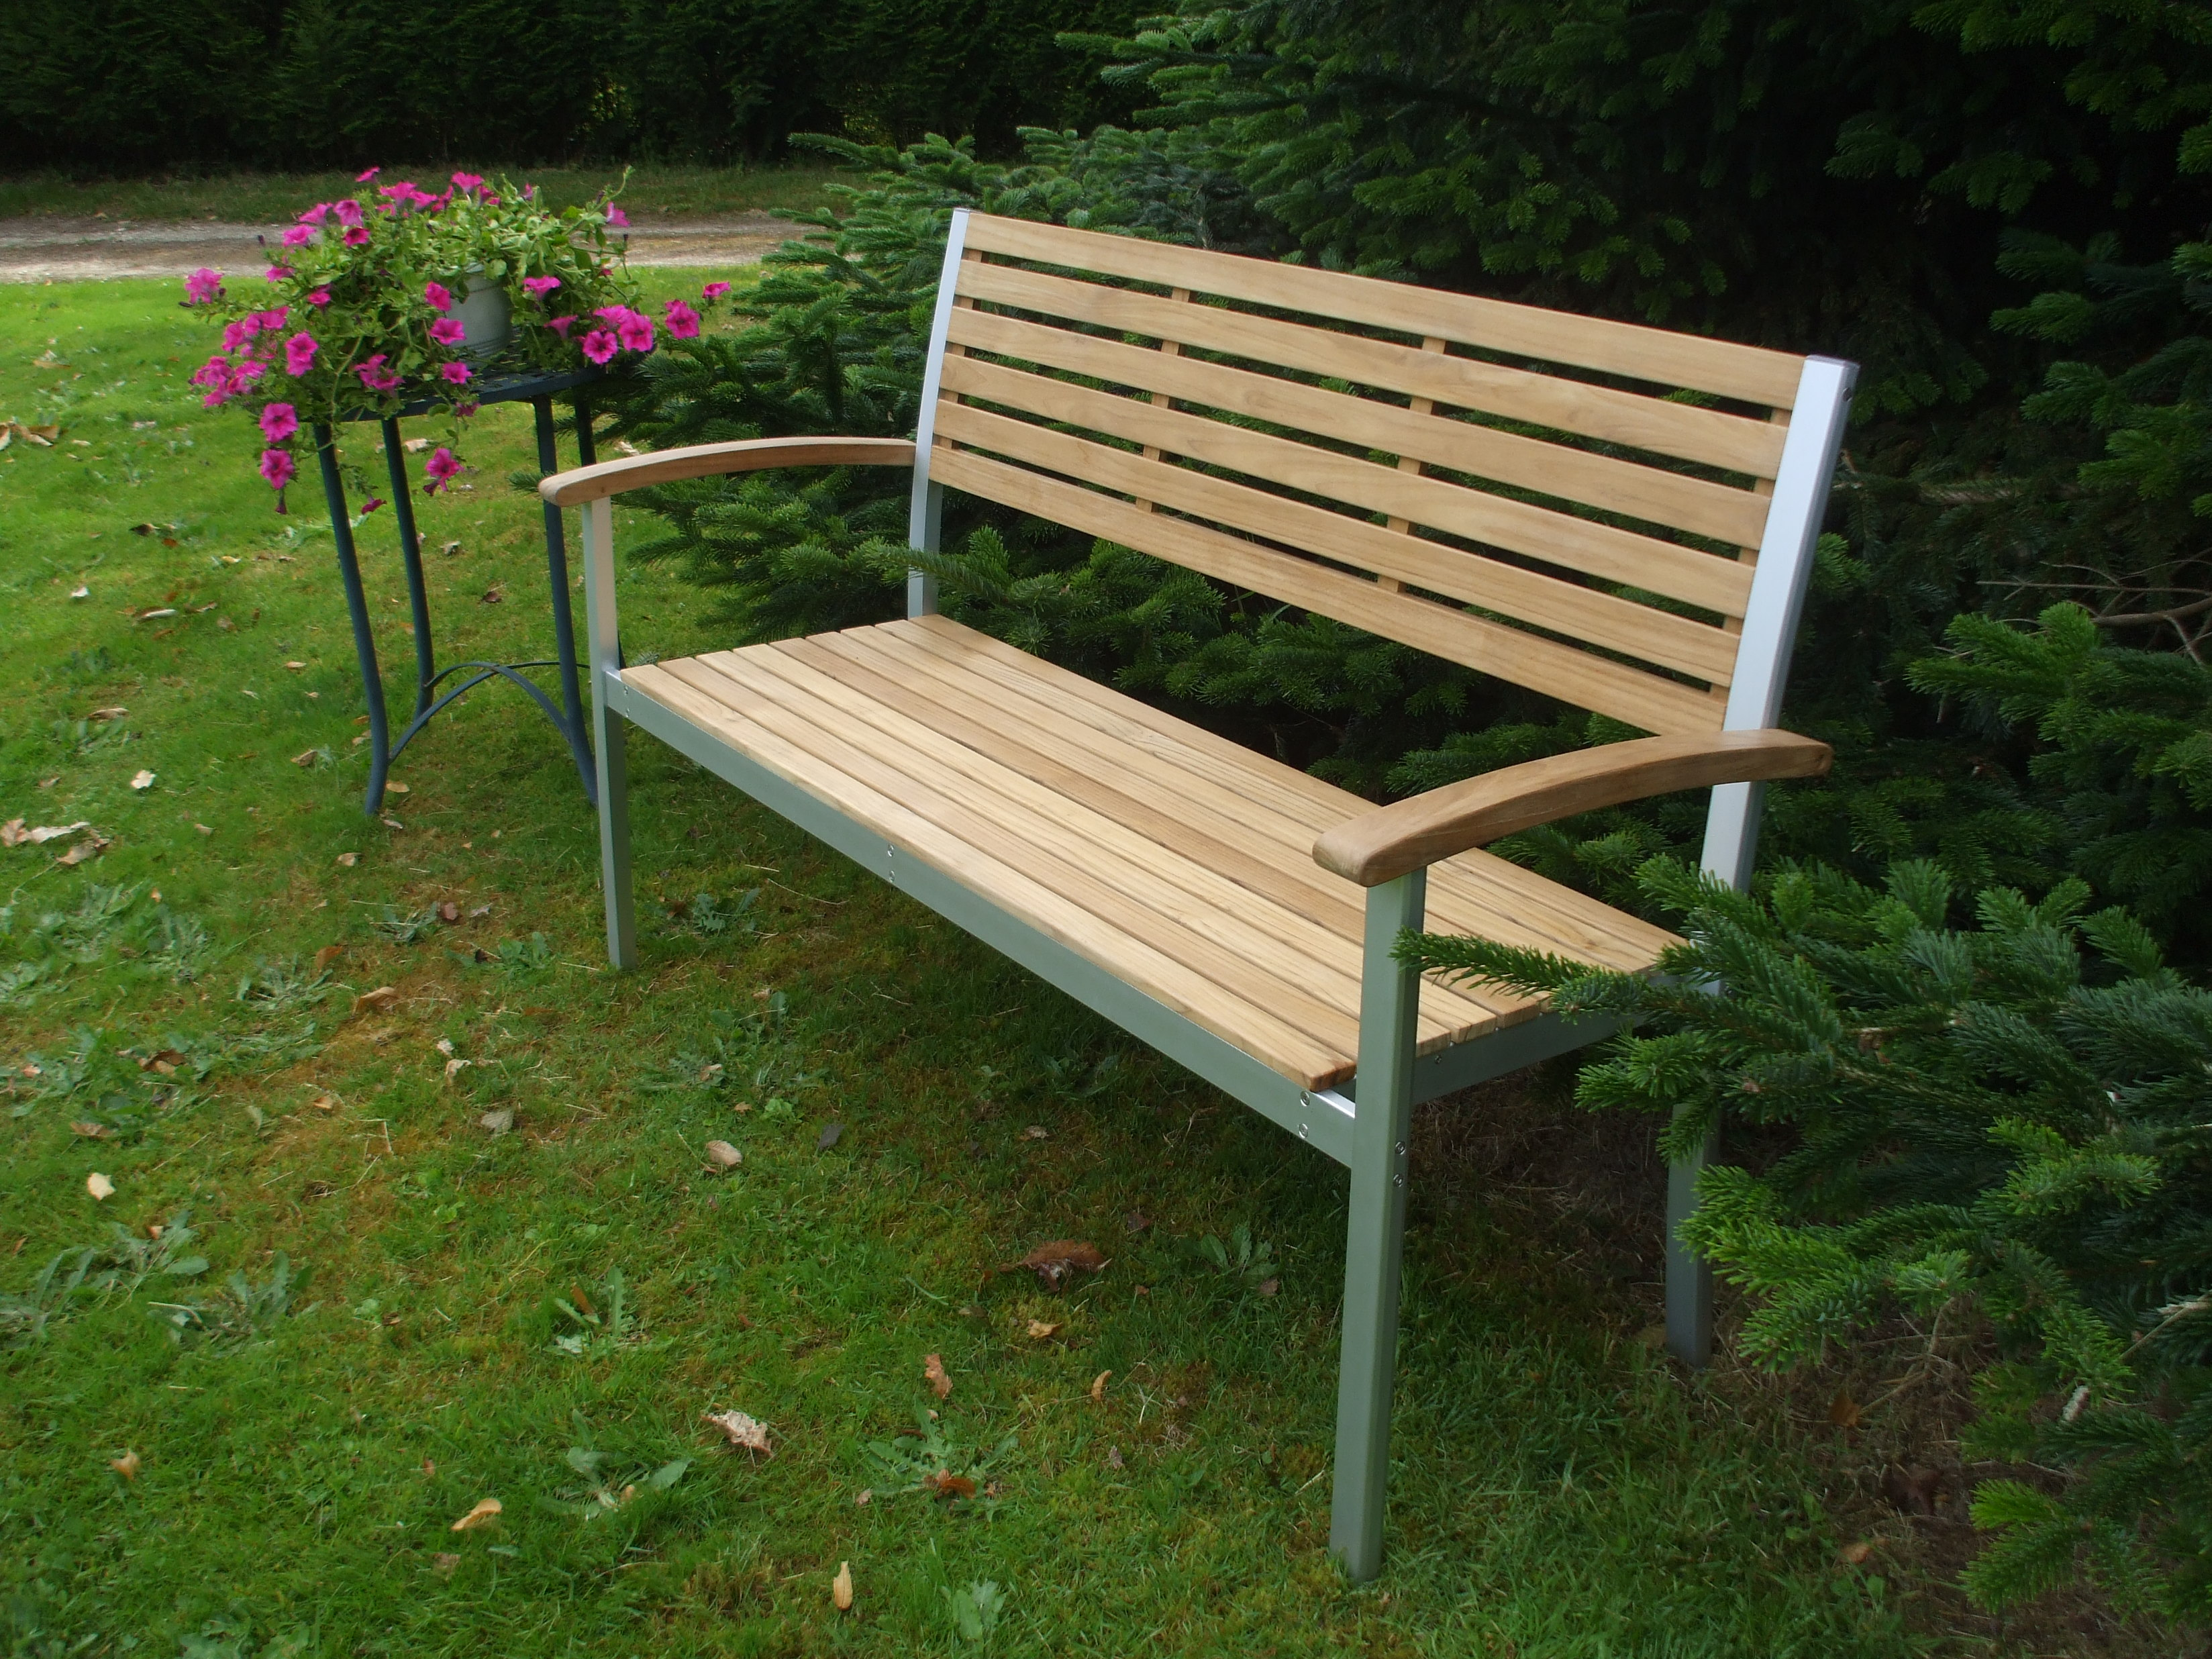 Banc de jardin archives brico deco for La conception de jardin